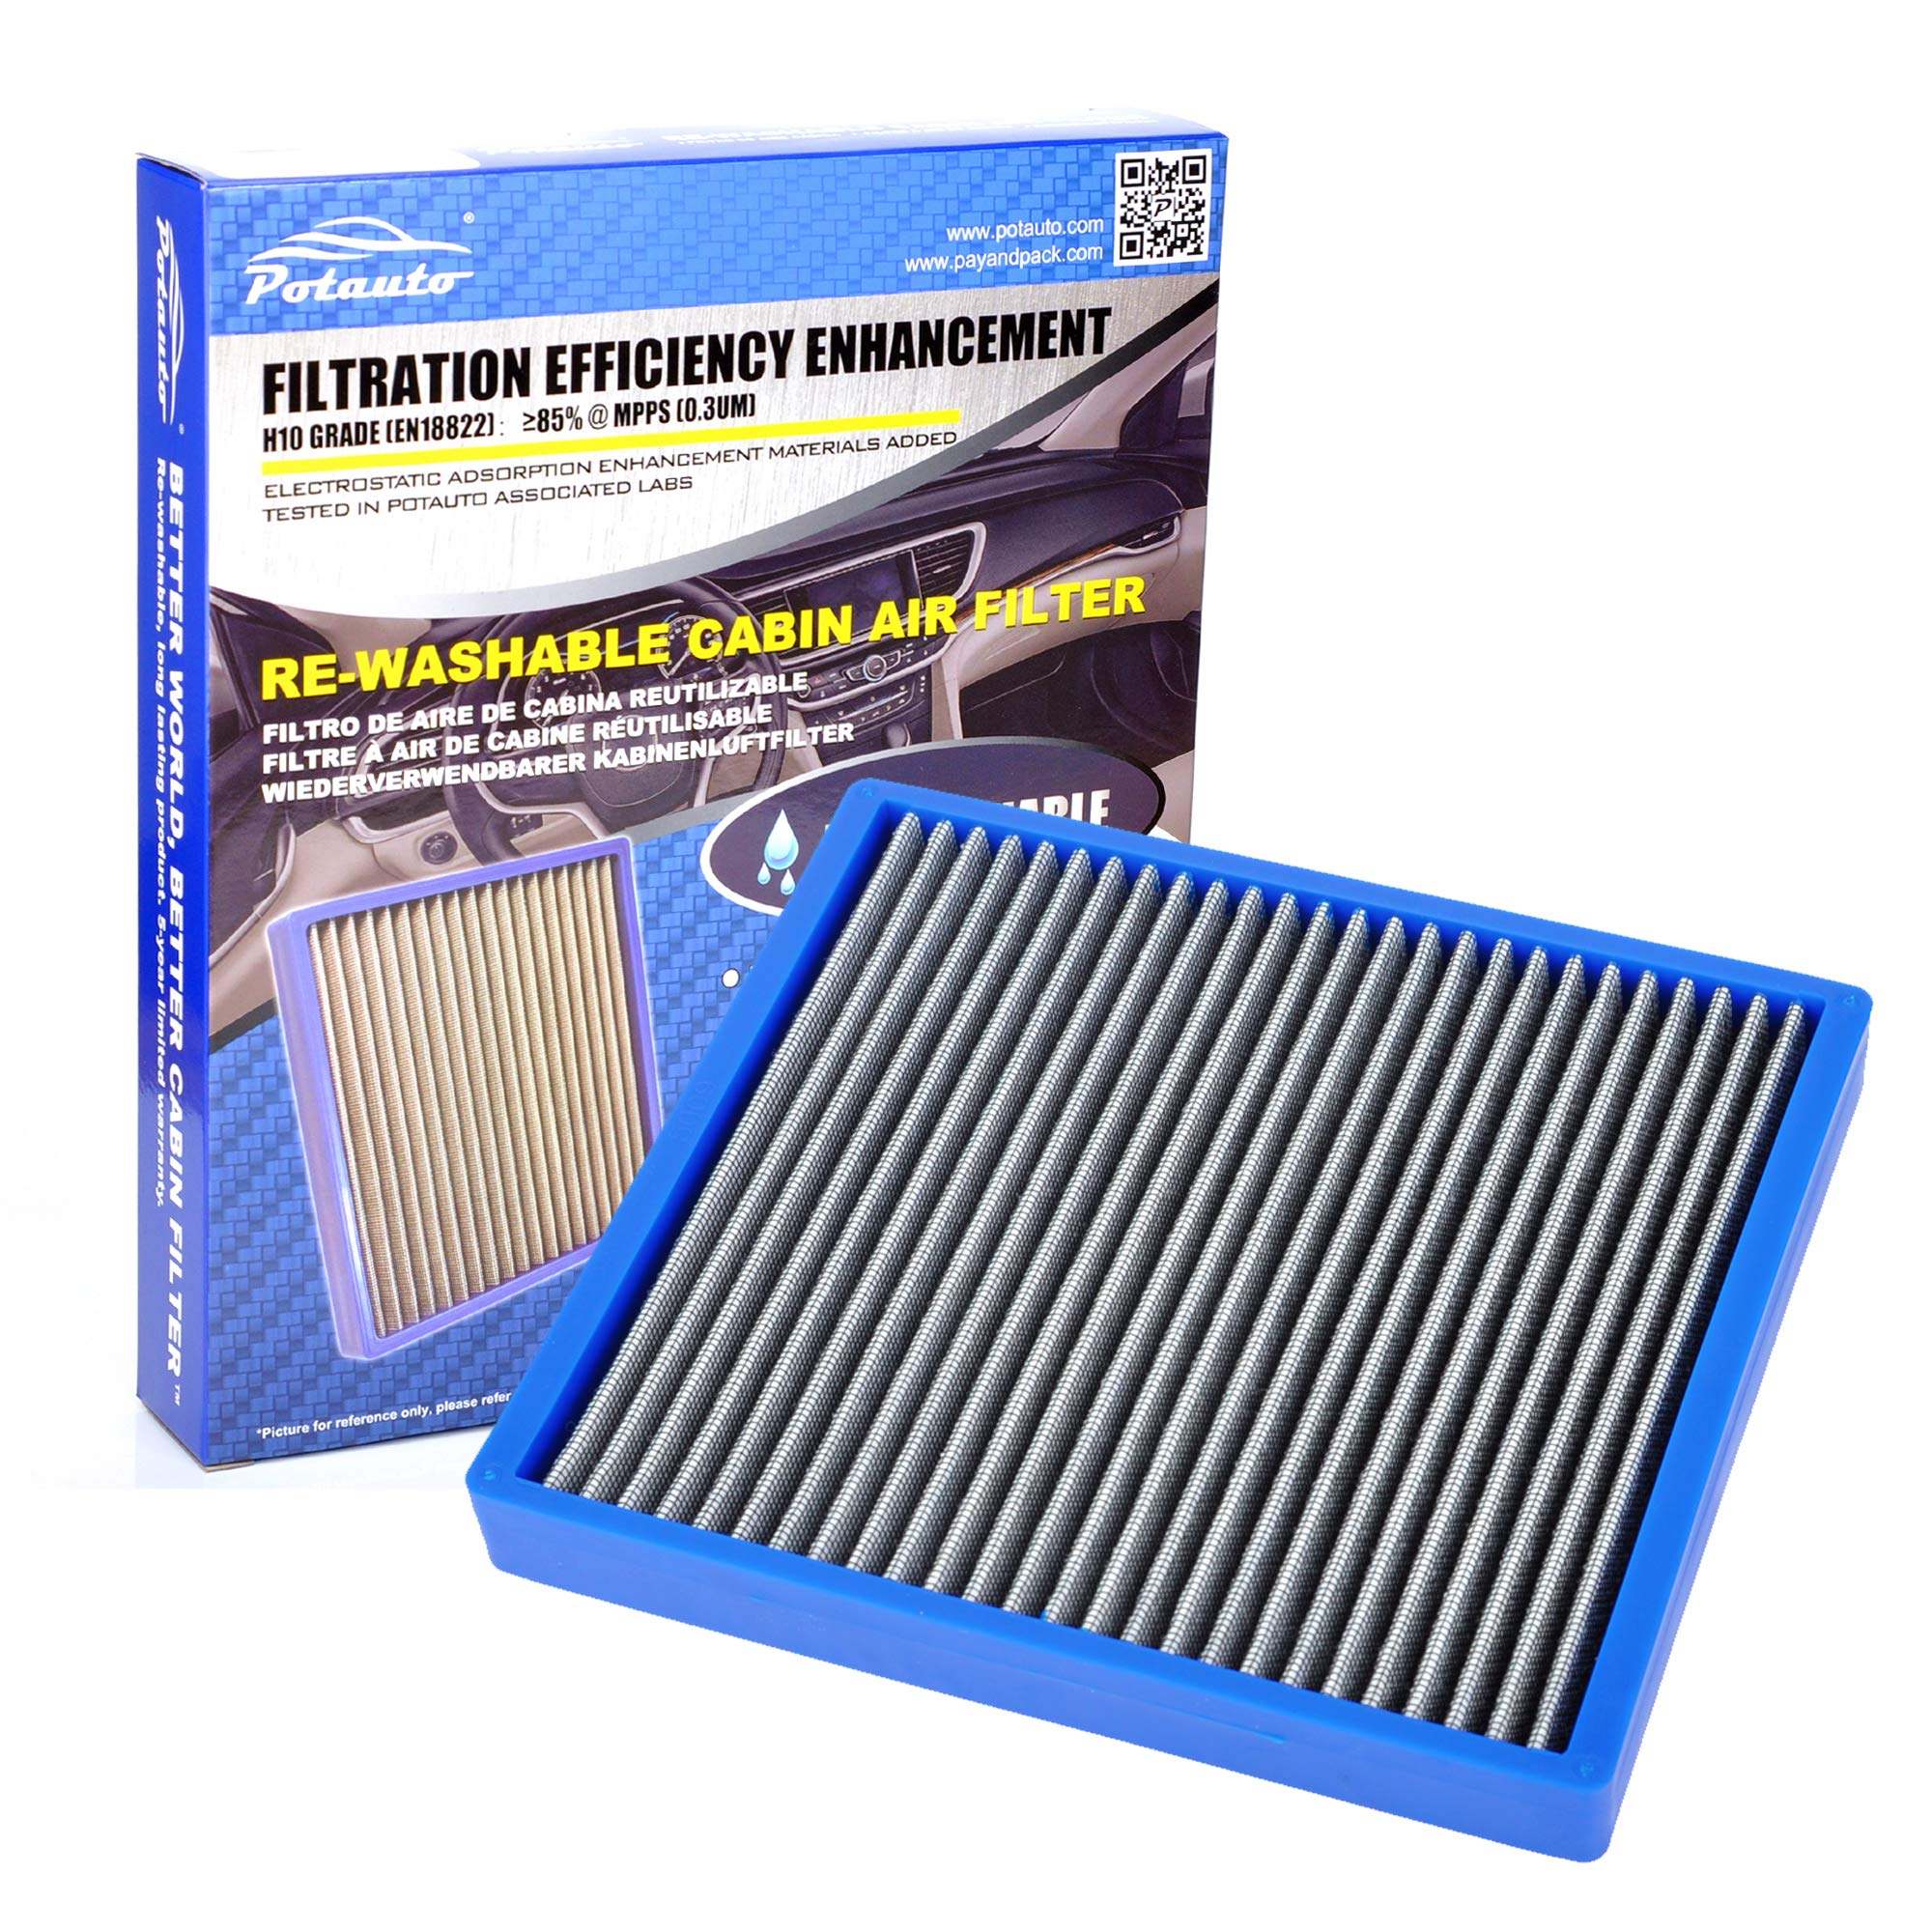 POTAUTO MAP 5009 Re-washable Cabin Air Filter Cleans Airflow for CHRYSLER, Cirrus, DODGE, Avenger, Caliber, Journey, JEEP, Compass, Patriot (Re-washable (Blue)) by Potauto